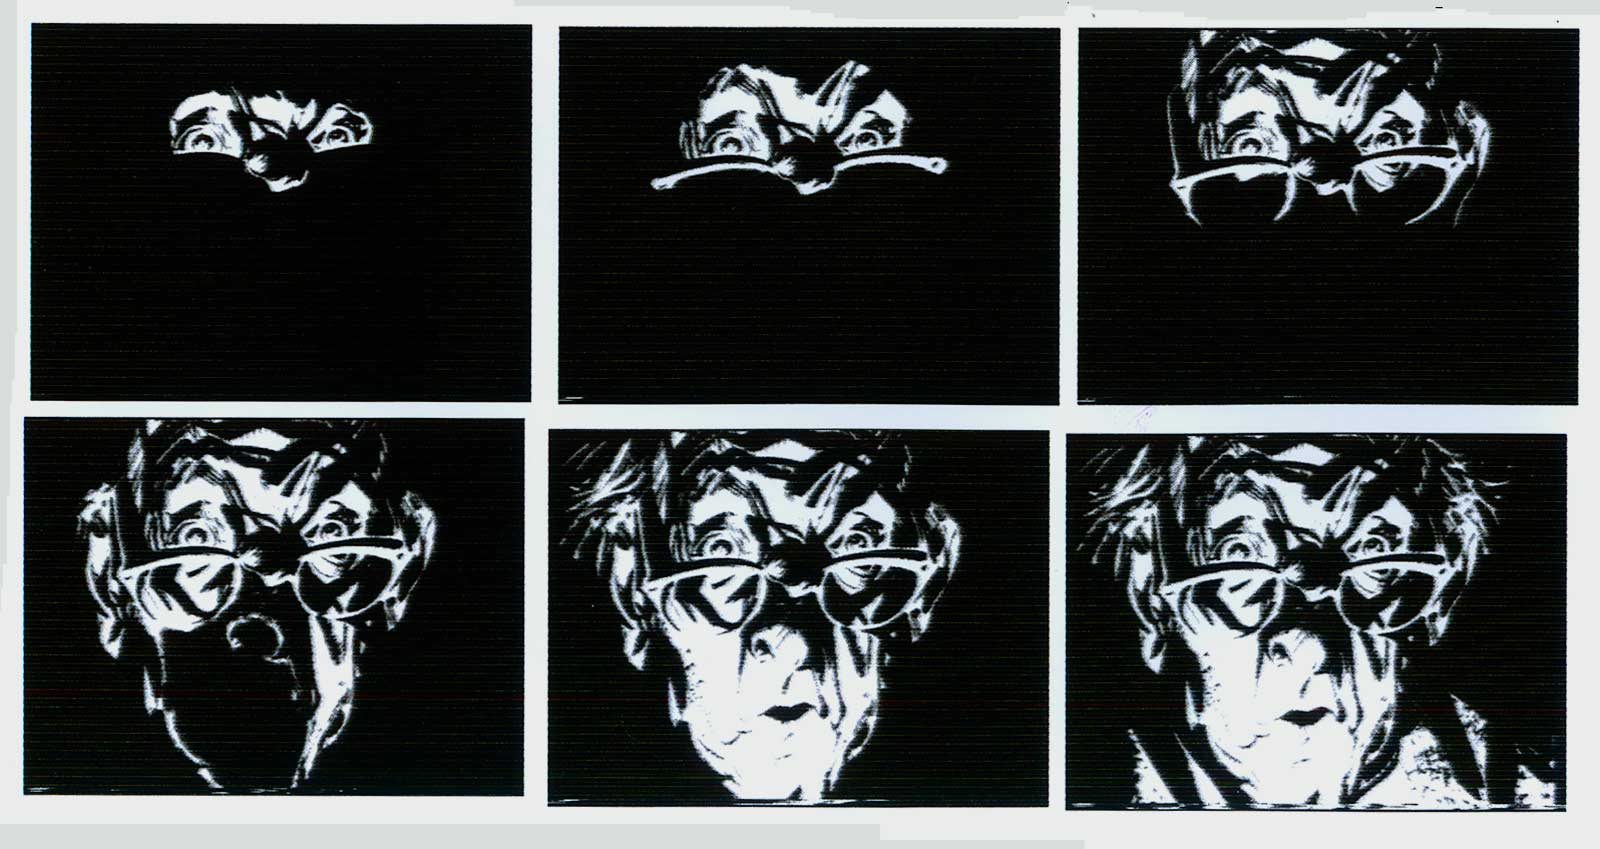 "These frames featuring ""Mort Cinder"" are taken from the film Breccia: Maestro de fas Historiestas, in which some of his techniques were demonstrated for the camera, show clearly his use of razor blades to carve out white areas from a prepared black surface."